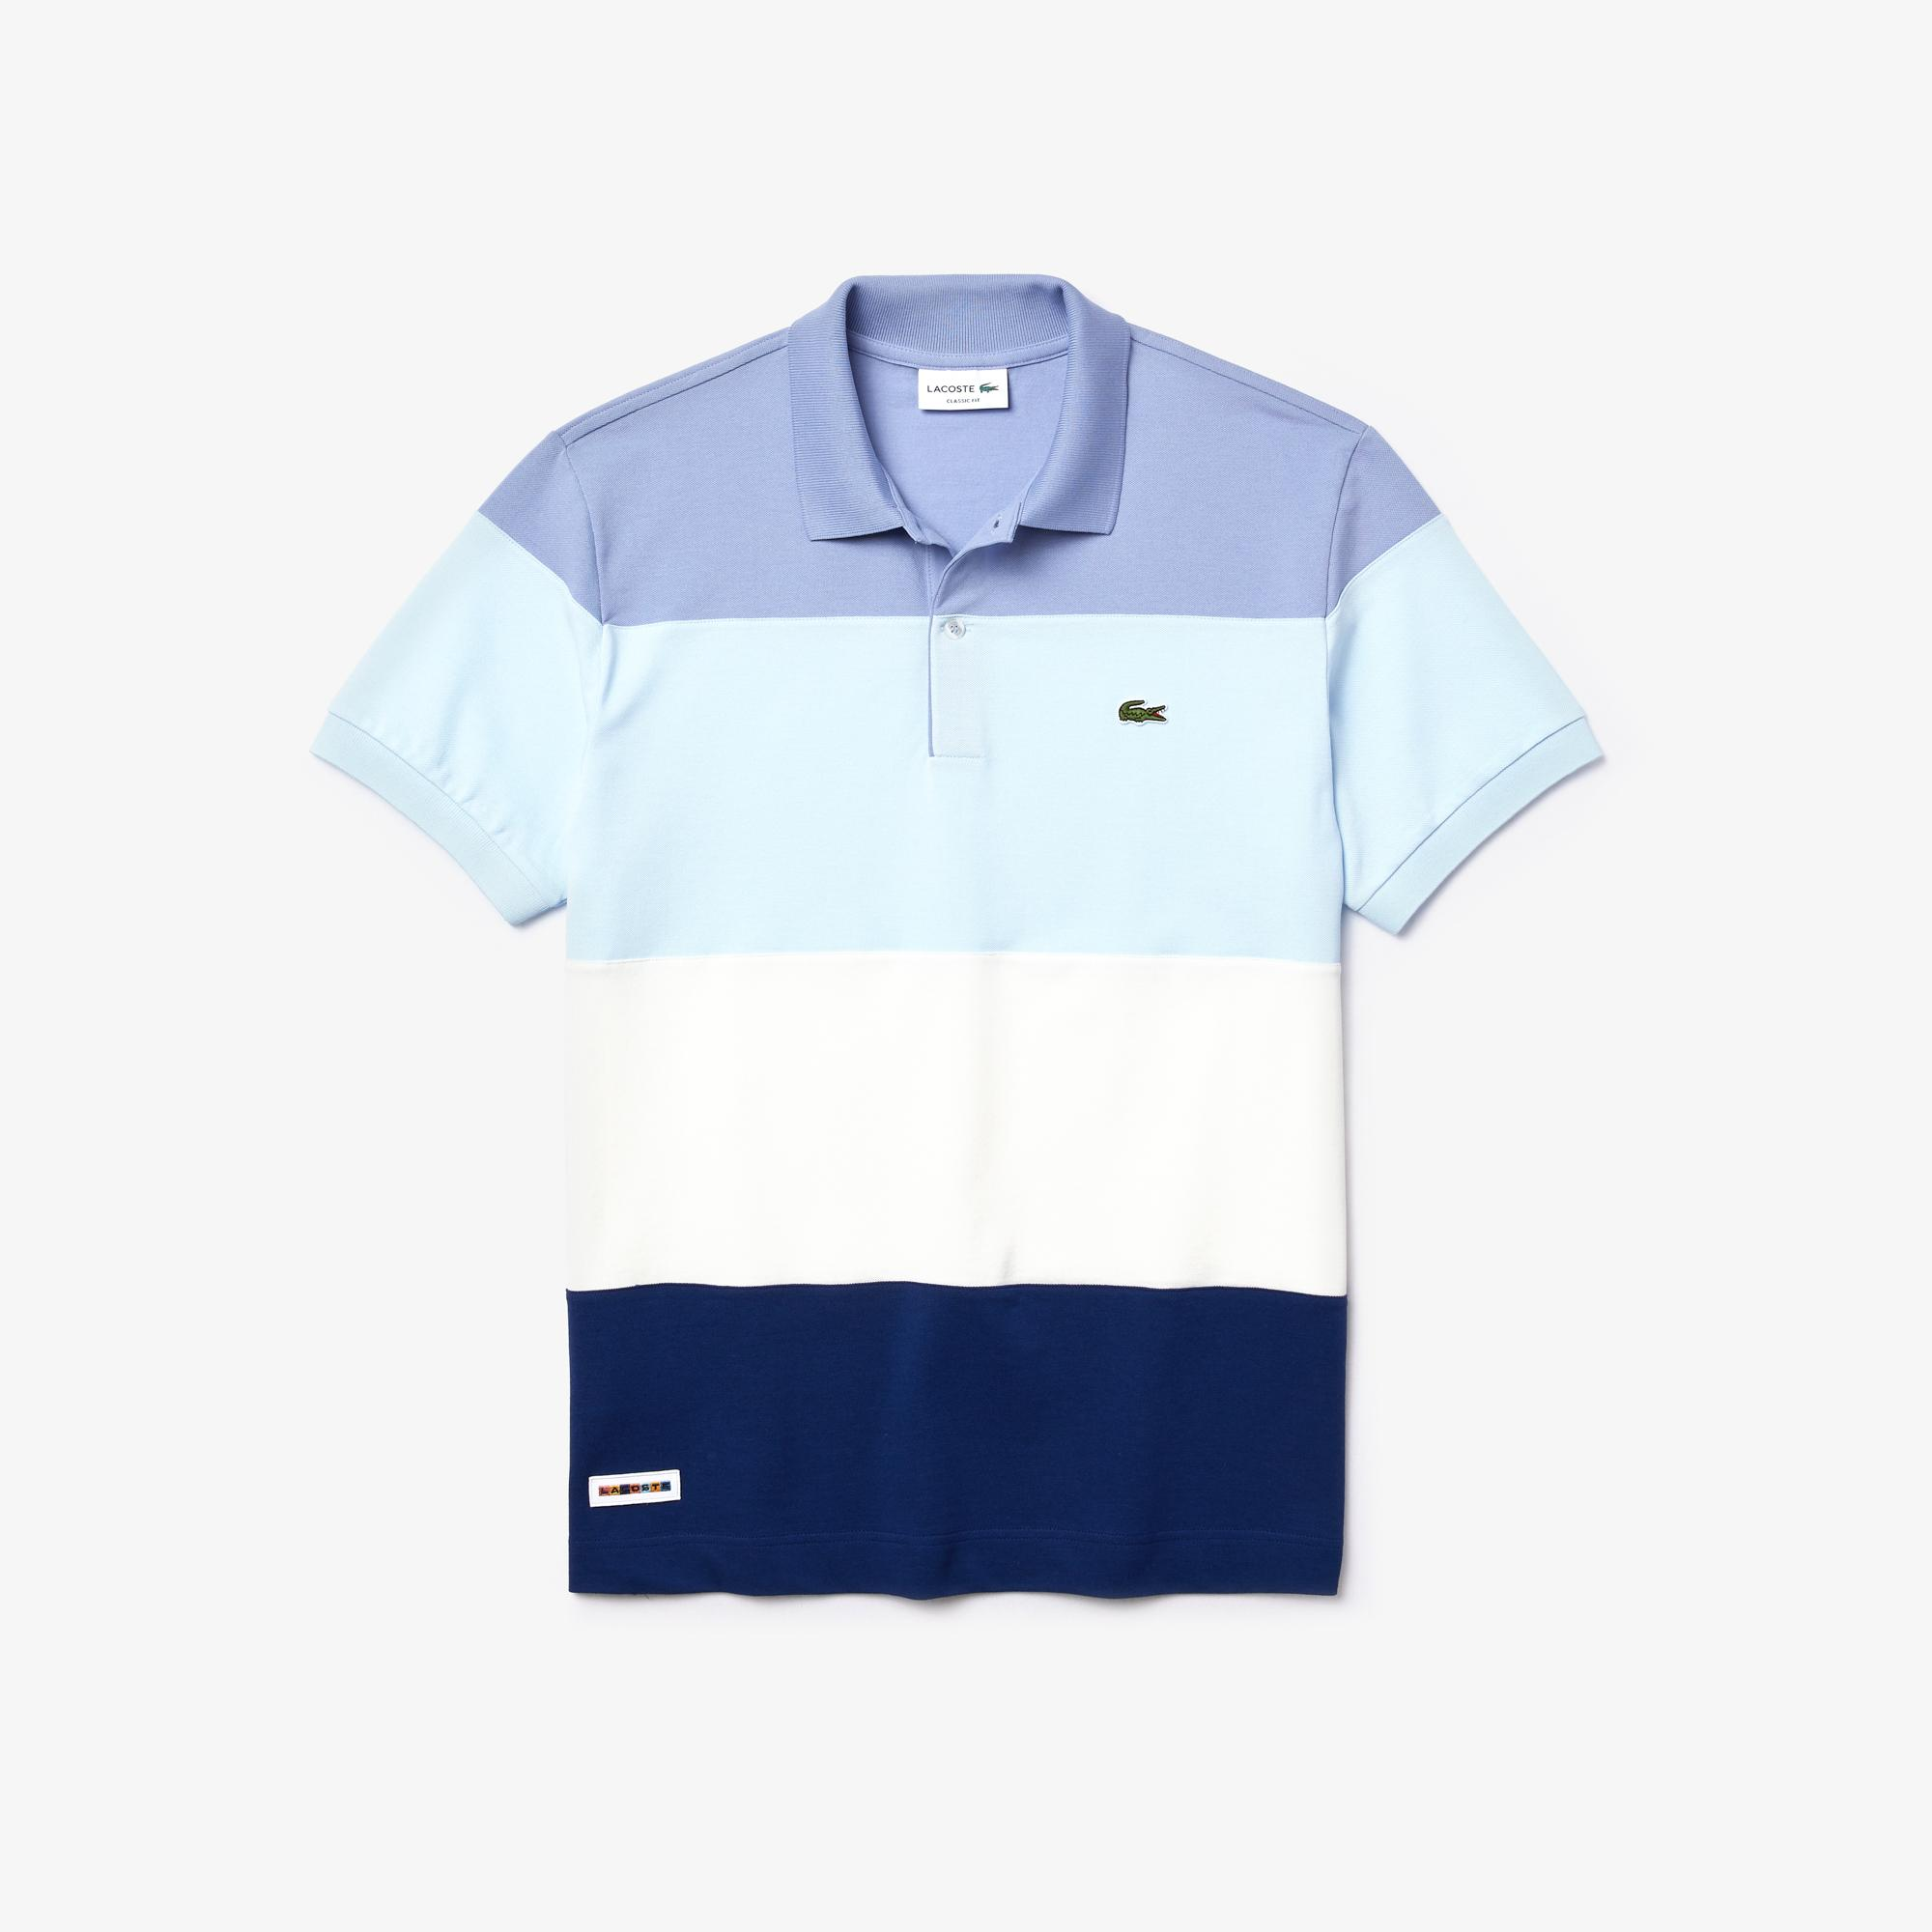 Lacoste Men's Fresh And Light Cotton Piqué Classic Fit Polo